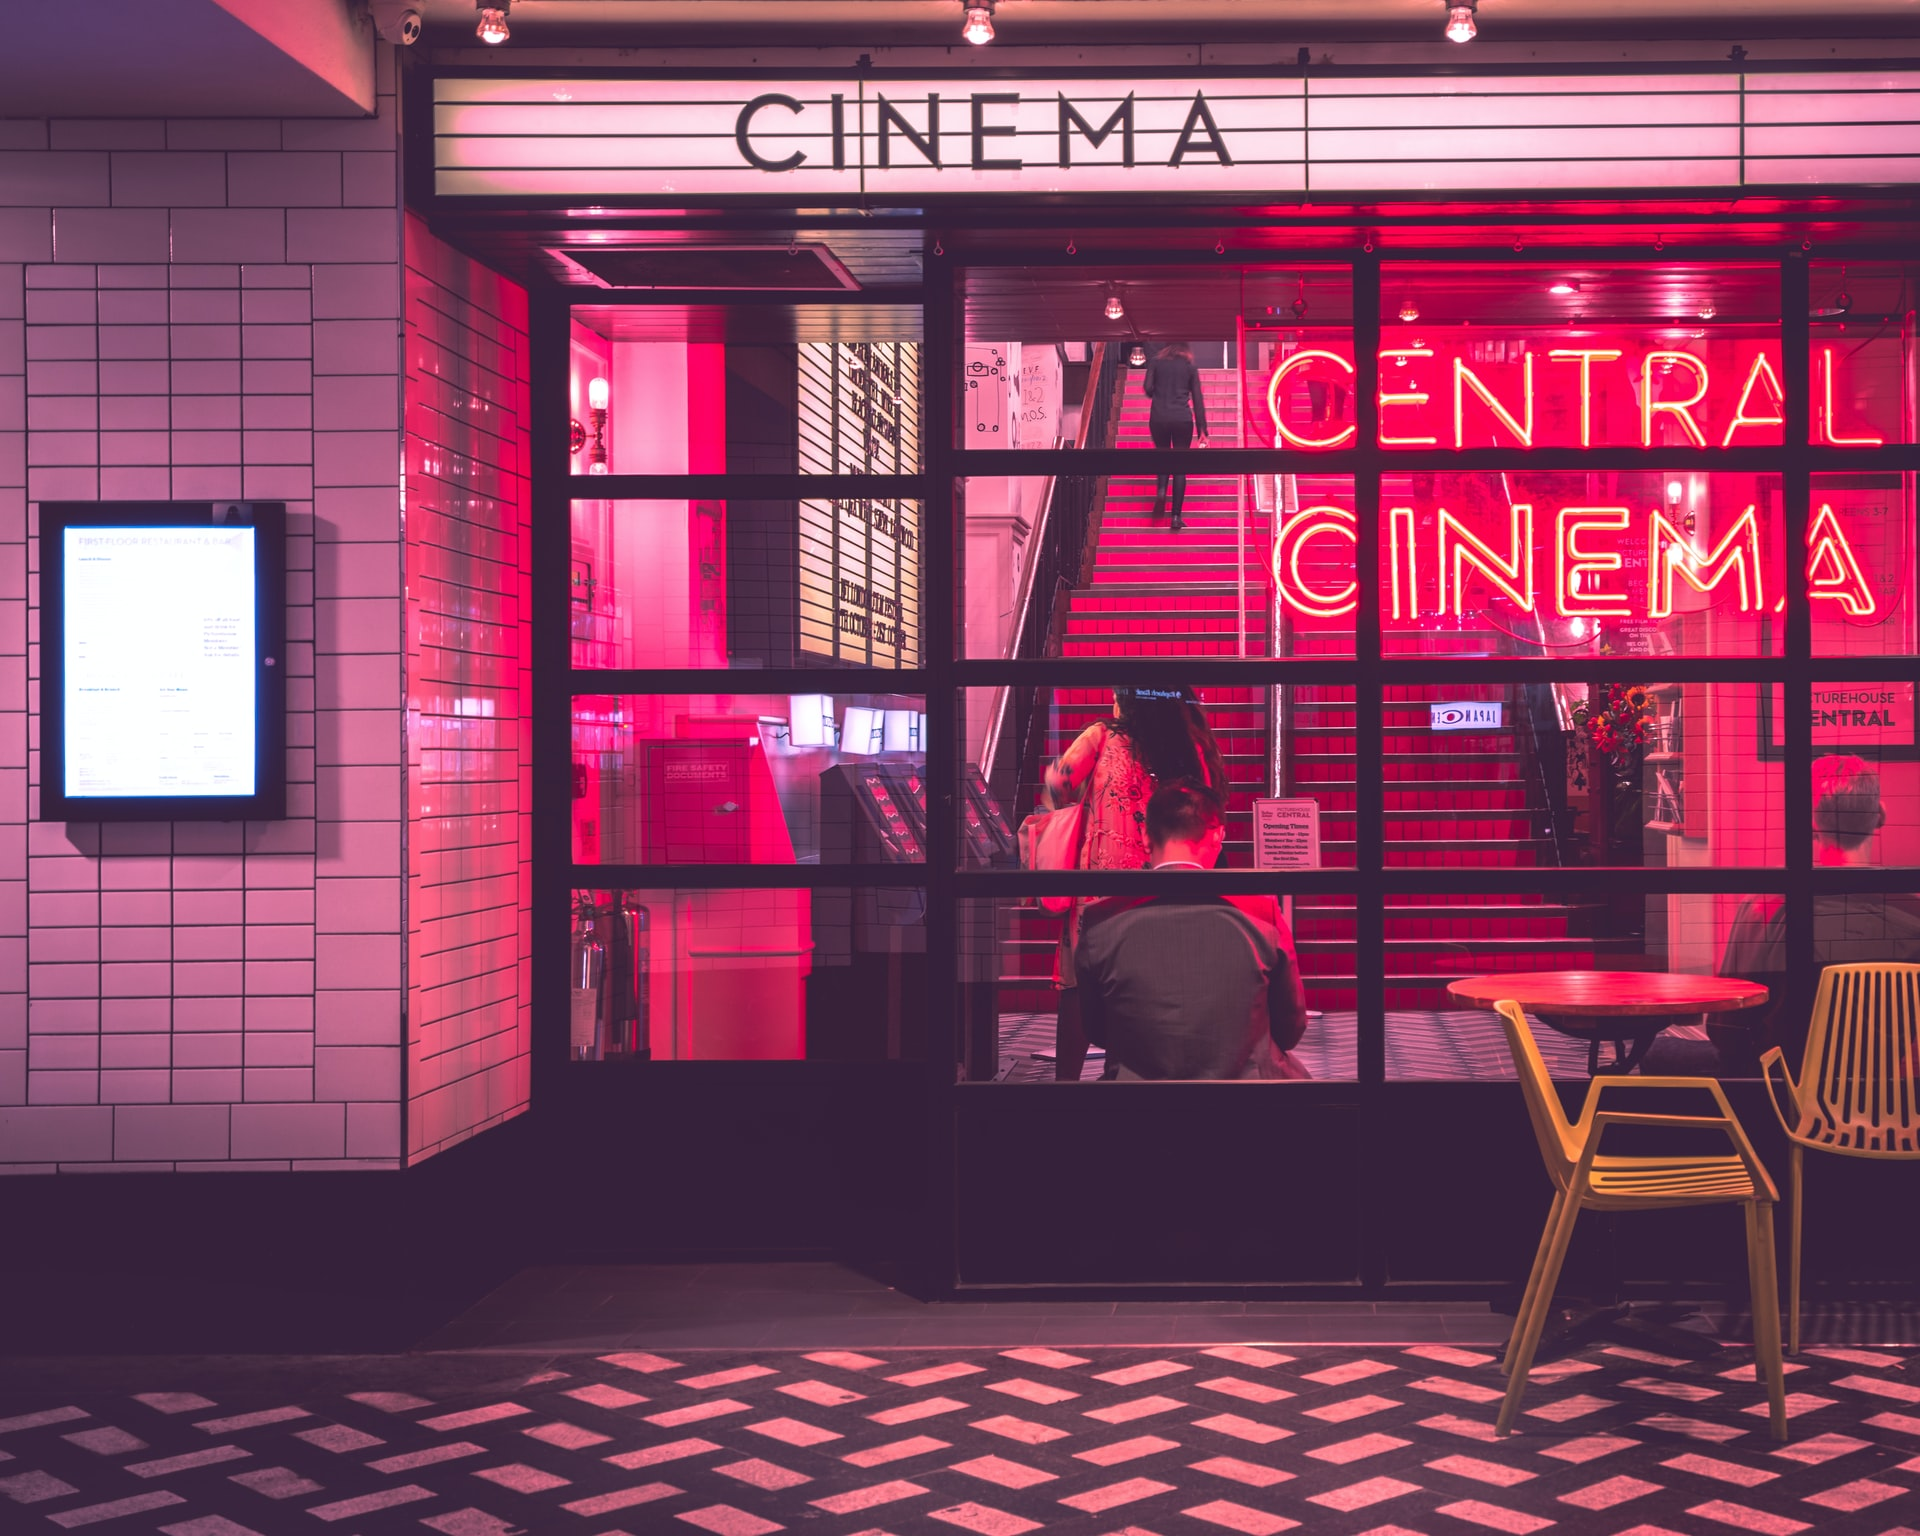 Image of a cinema.